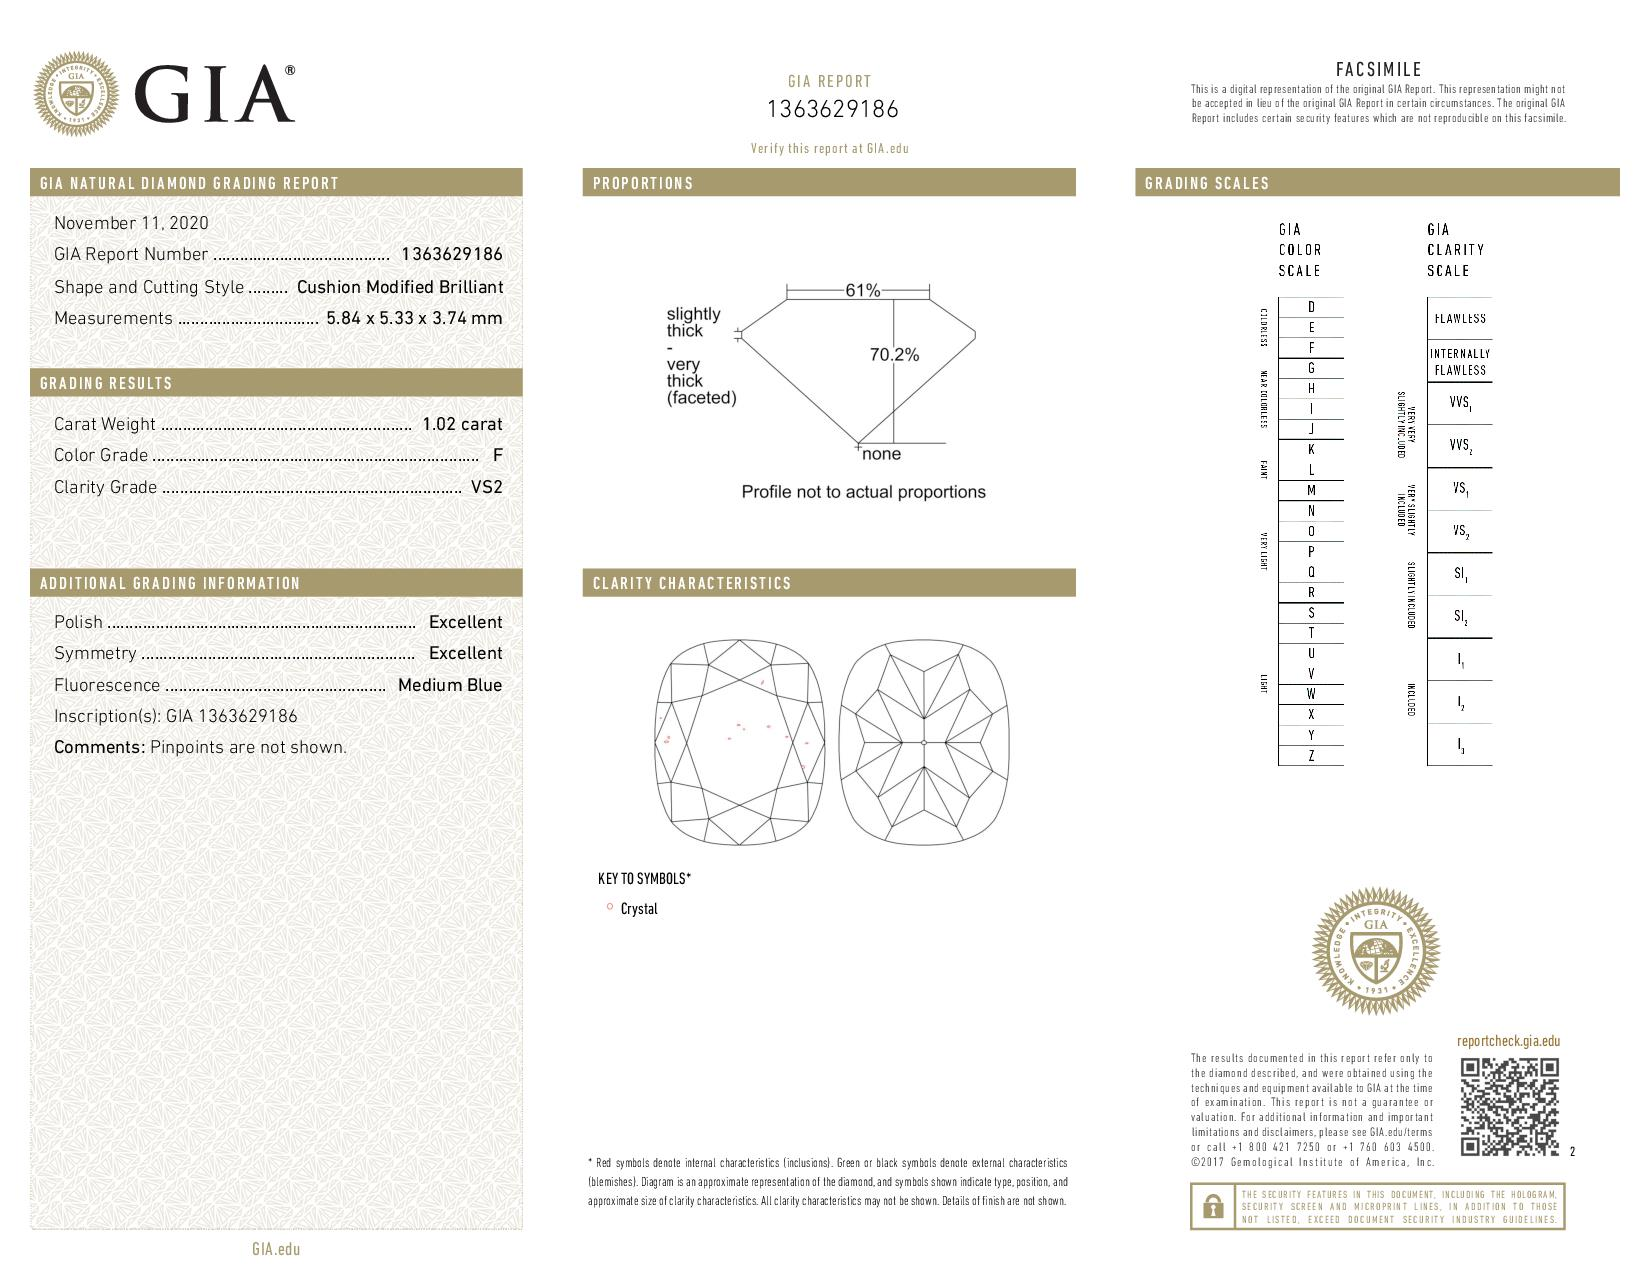 This is a 1.02 carat cushion shape, F color, VS2 clarity natural diamond accompanied by a GIA grading report.